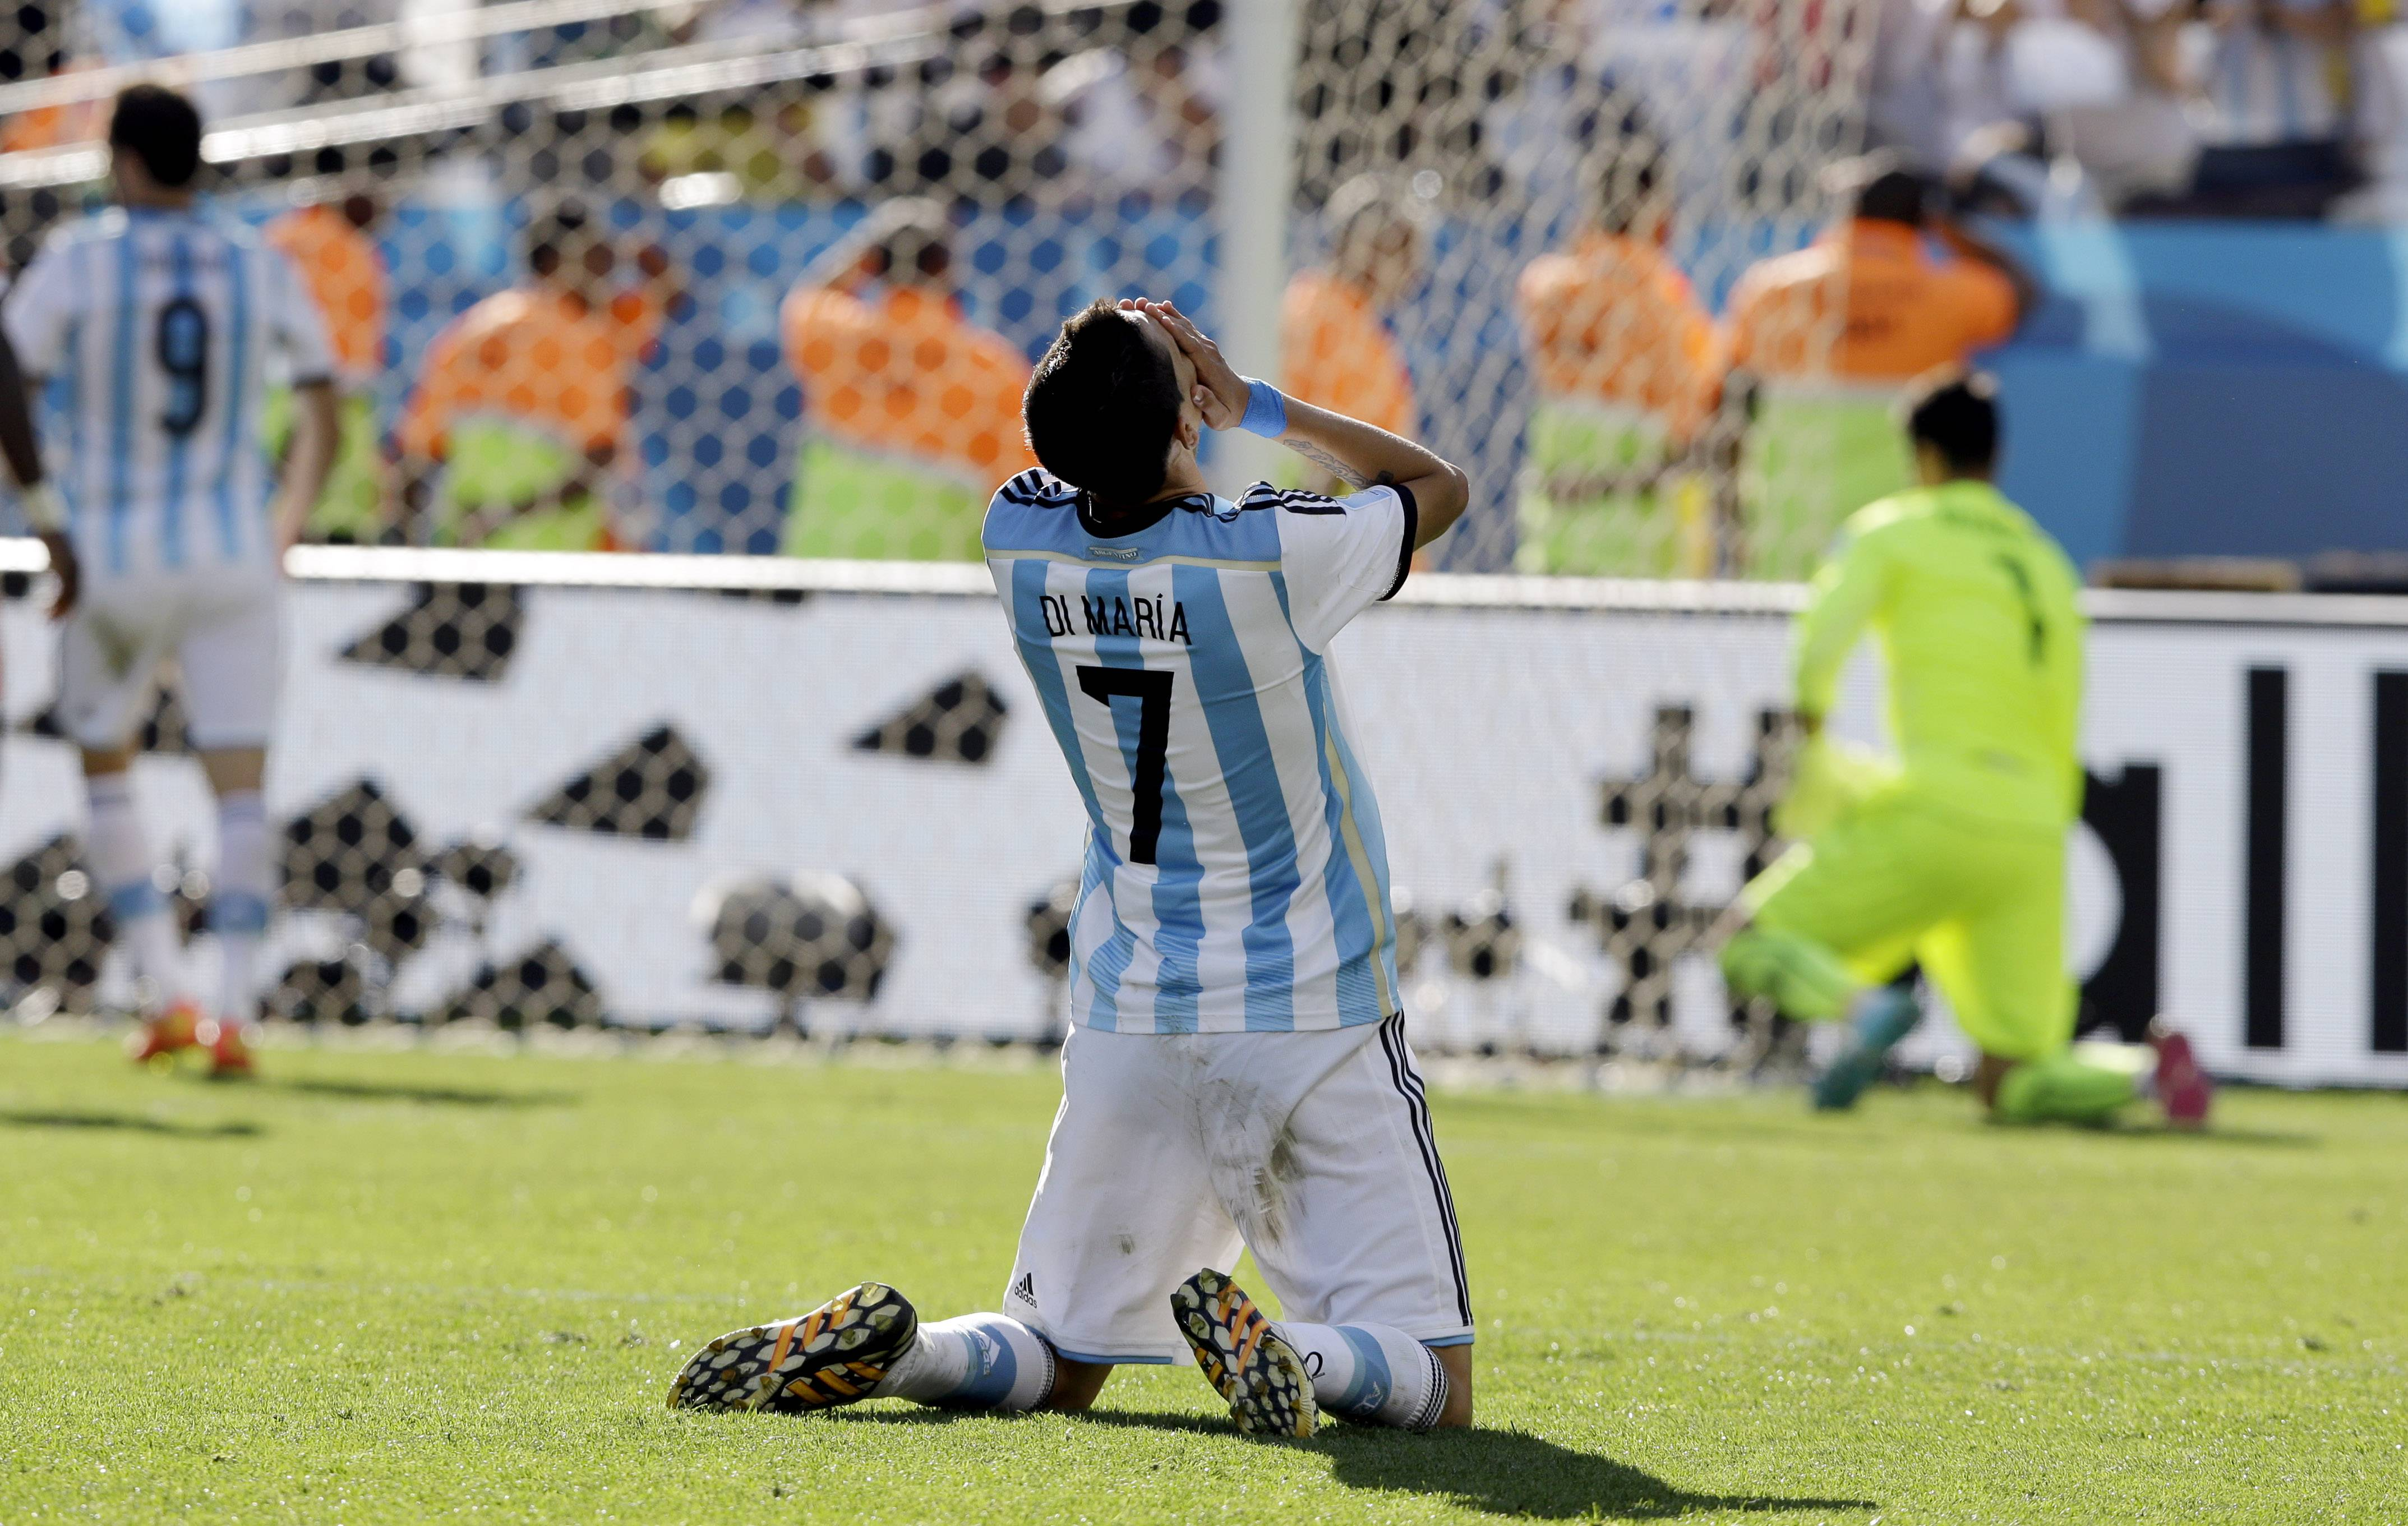 Argentina's Angel di Maria reacts after missing a chance to score Tuesday during the World Cup round of 16 soccer match against Switzerland at the Itaquerao Stadium in Sao Paulo, Brazil. Argentina beat Switzerland 1-0 after extra time.